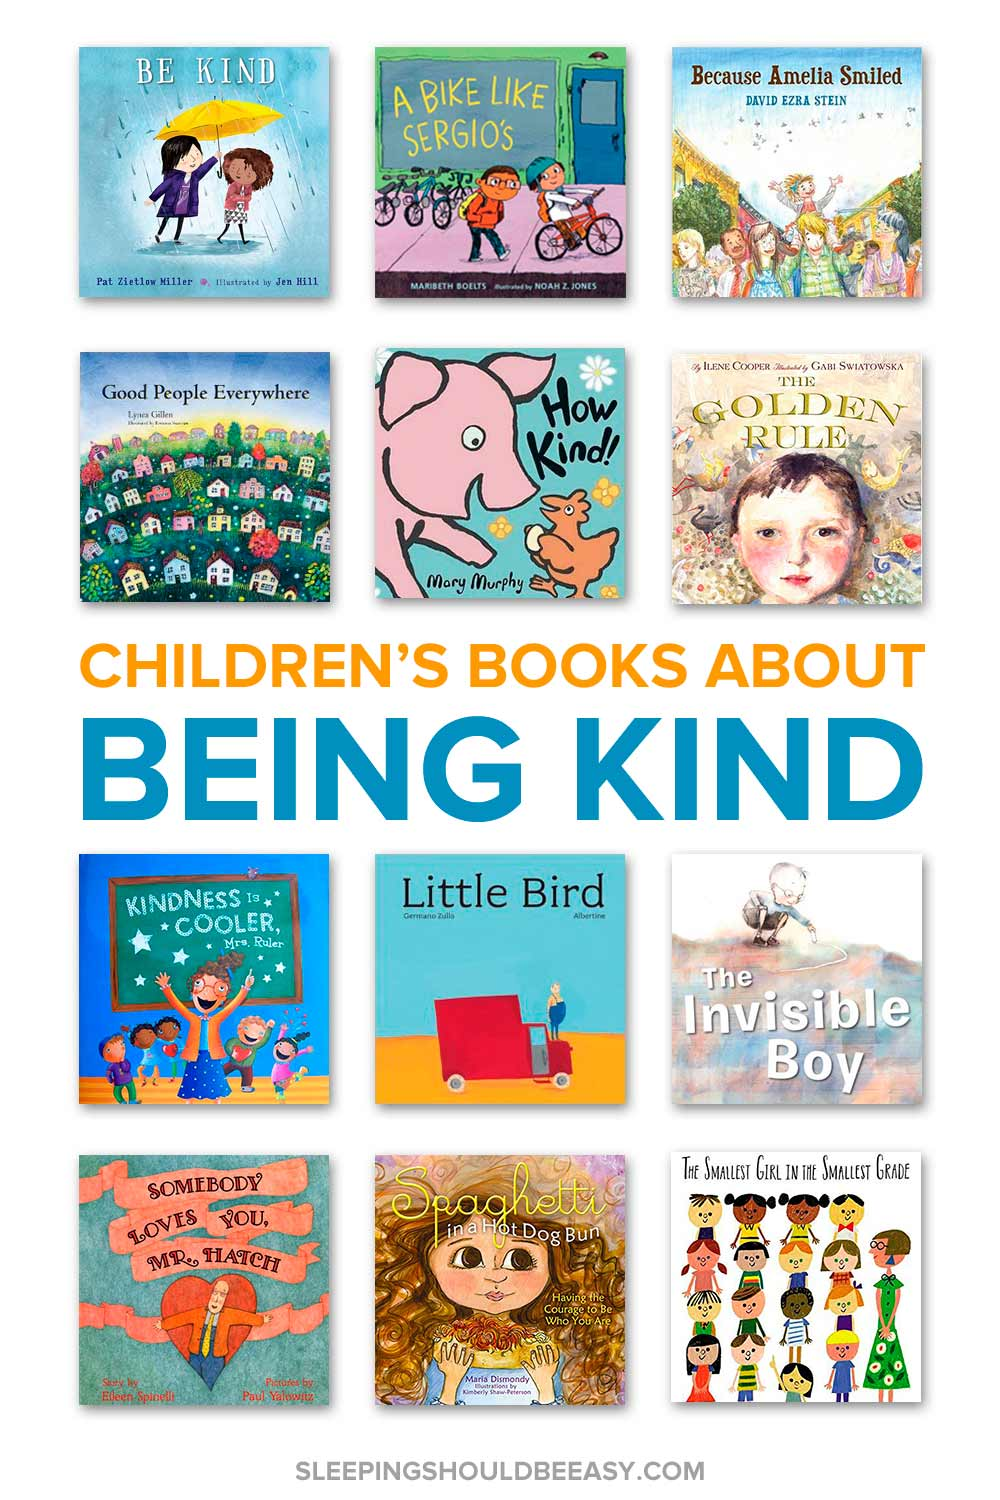 Children's books about being kind